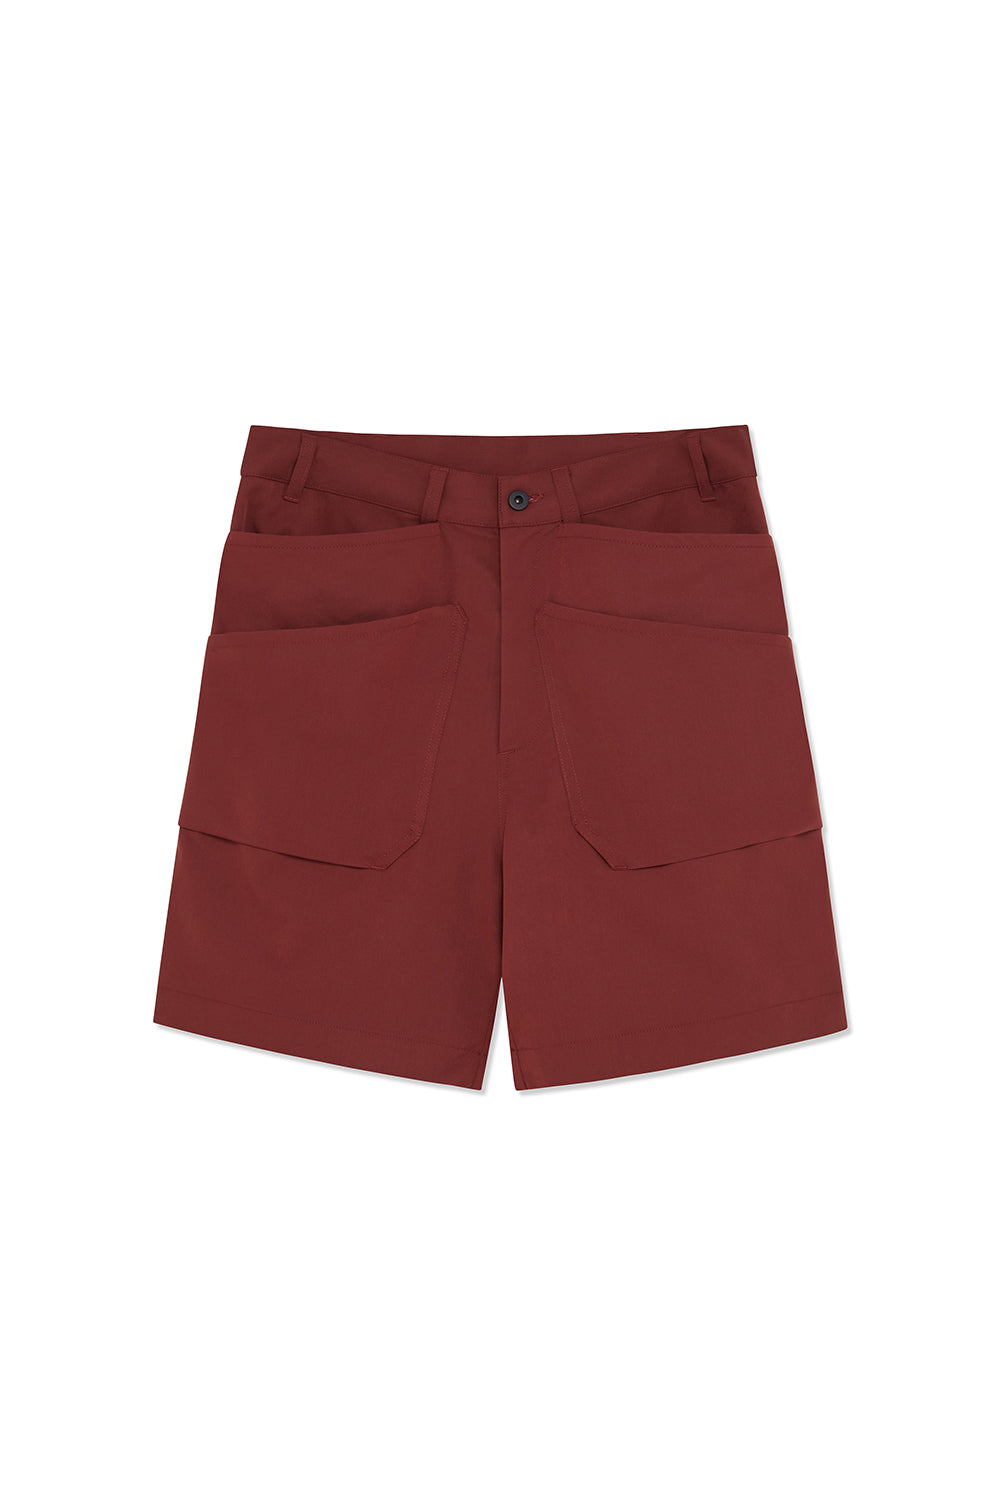 TADKHIIR SHORT